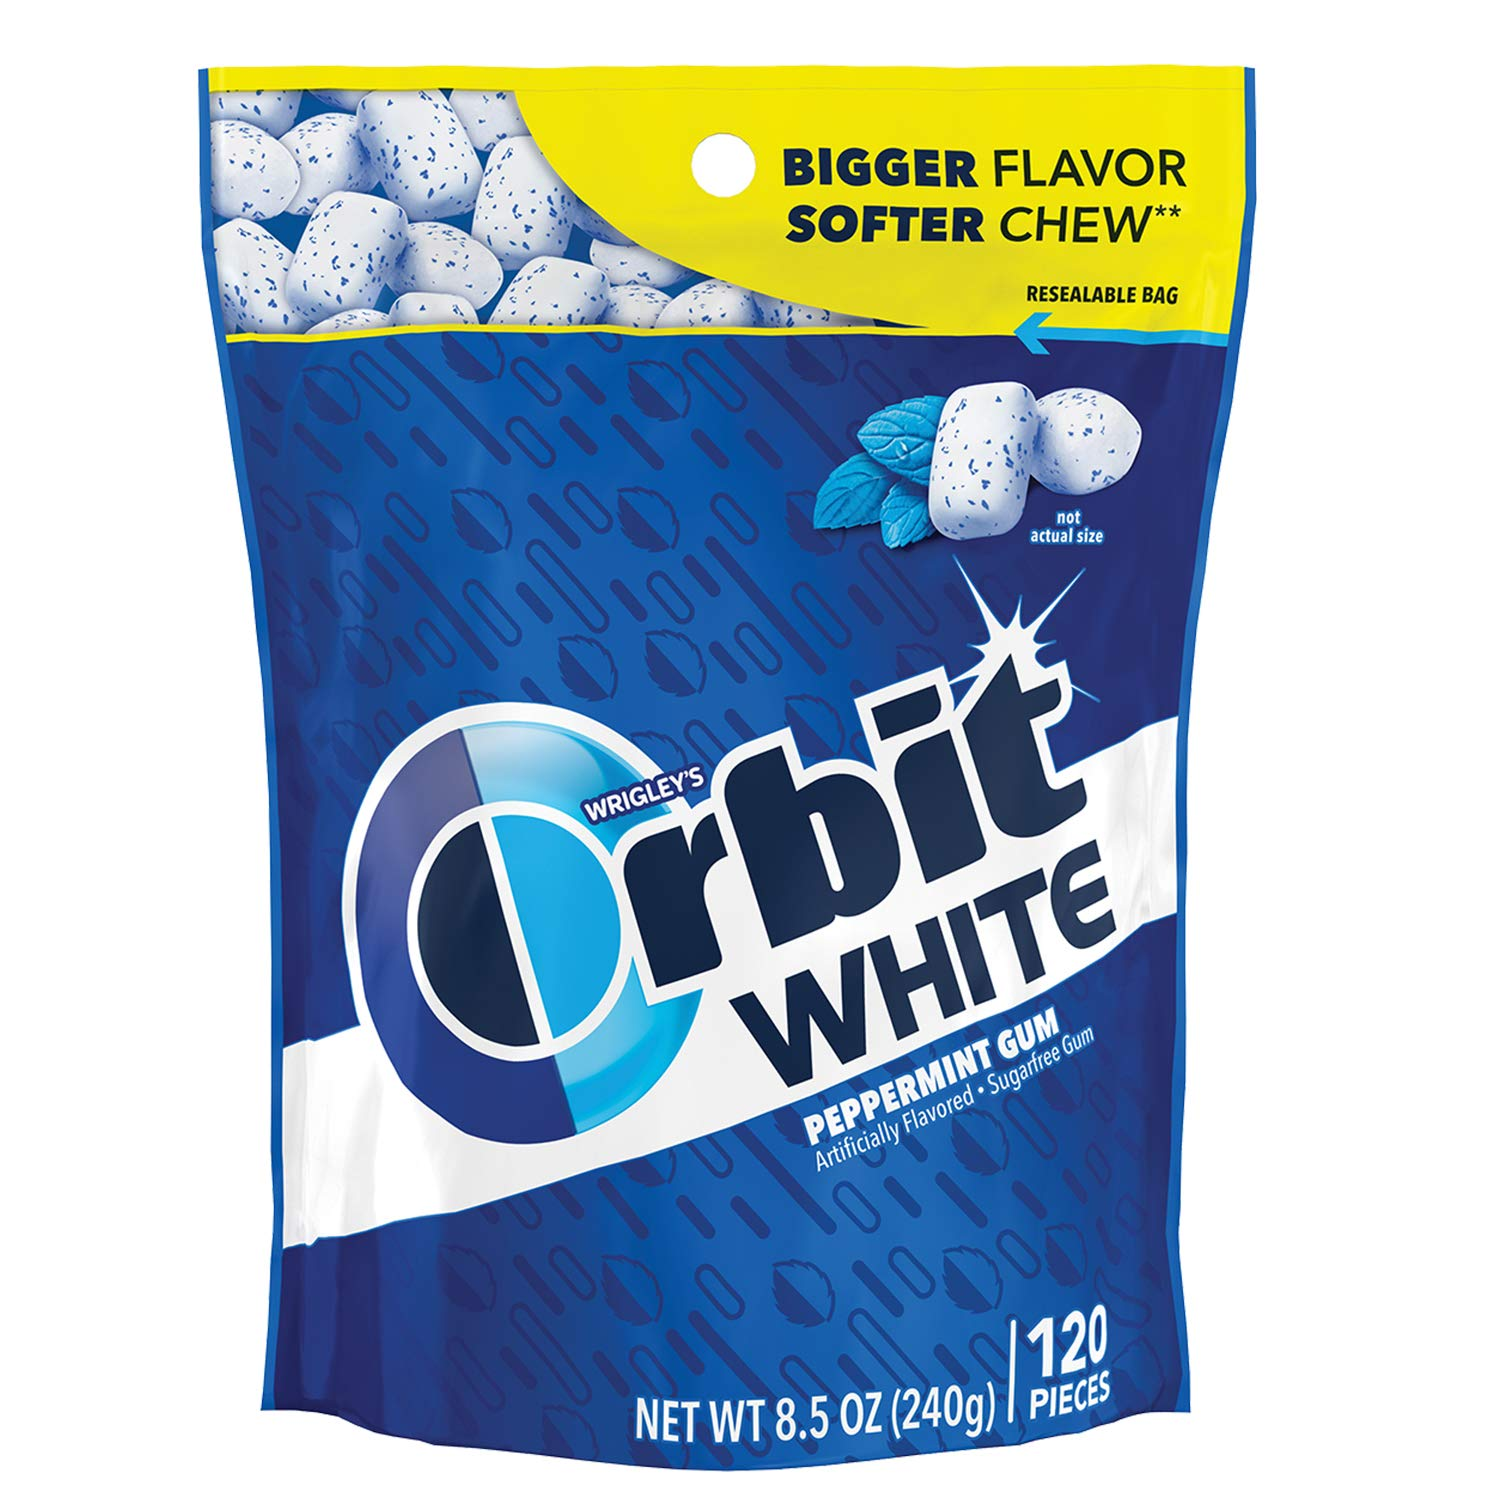 ORBIT Gum WHITE Peppermint Sugarfree Chewing Gum, 8.5 Ounces Resealable Bag 120 Pieces (Pack of 8) by Orbit Gum